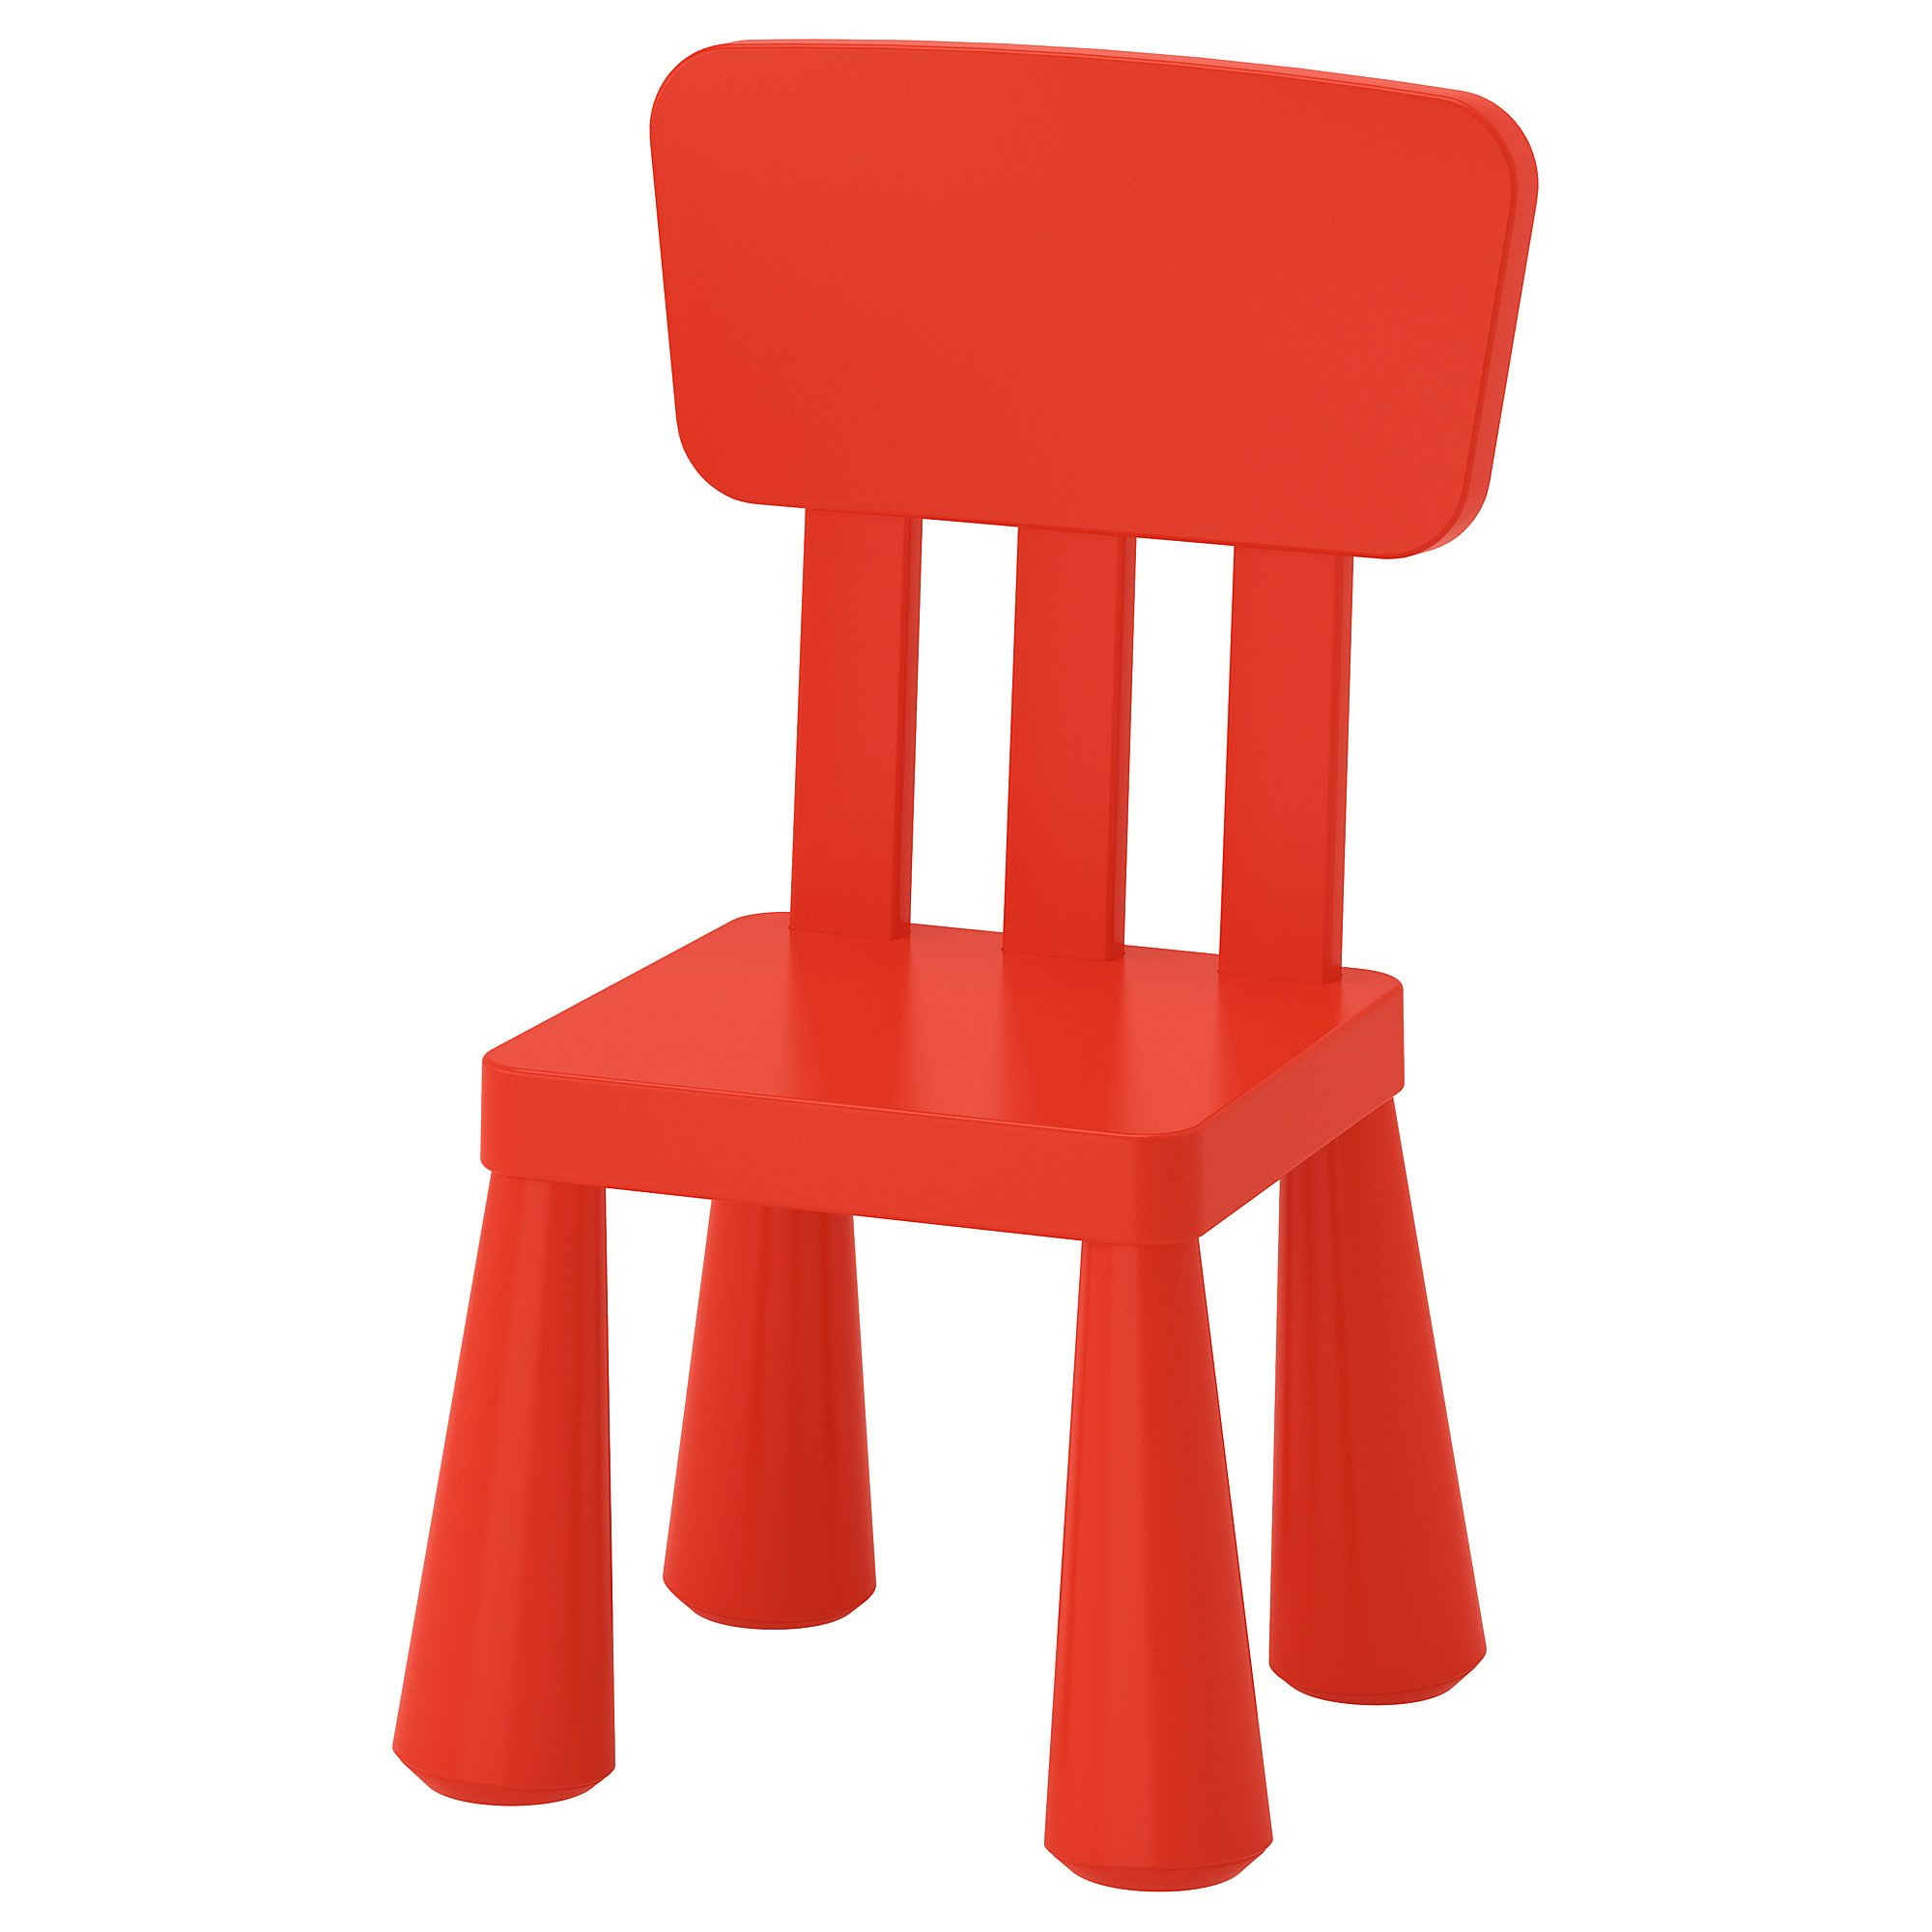 Ikea Mammut Kids Indoor / Outdoor Children's Chair, Red Color - 1 Pack